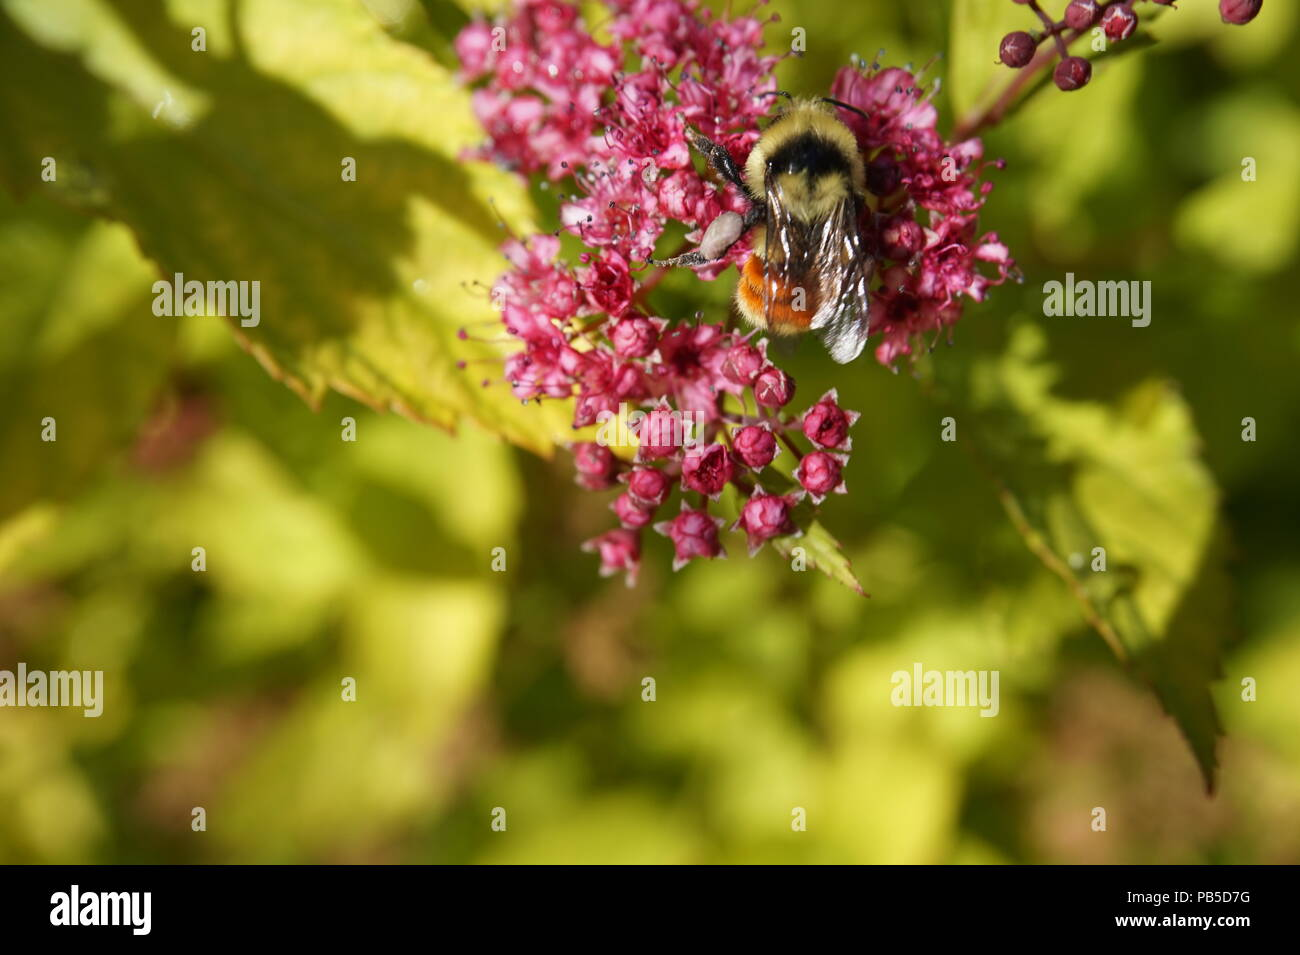 Honey Bee on pink wild flowers, Calgary Zoo, Calgary, Alberta, Canada - Stock Image